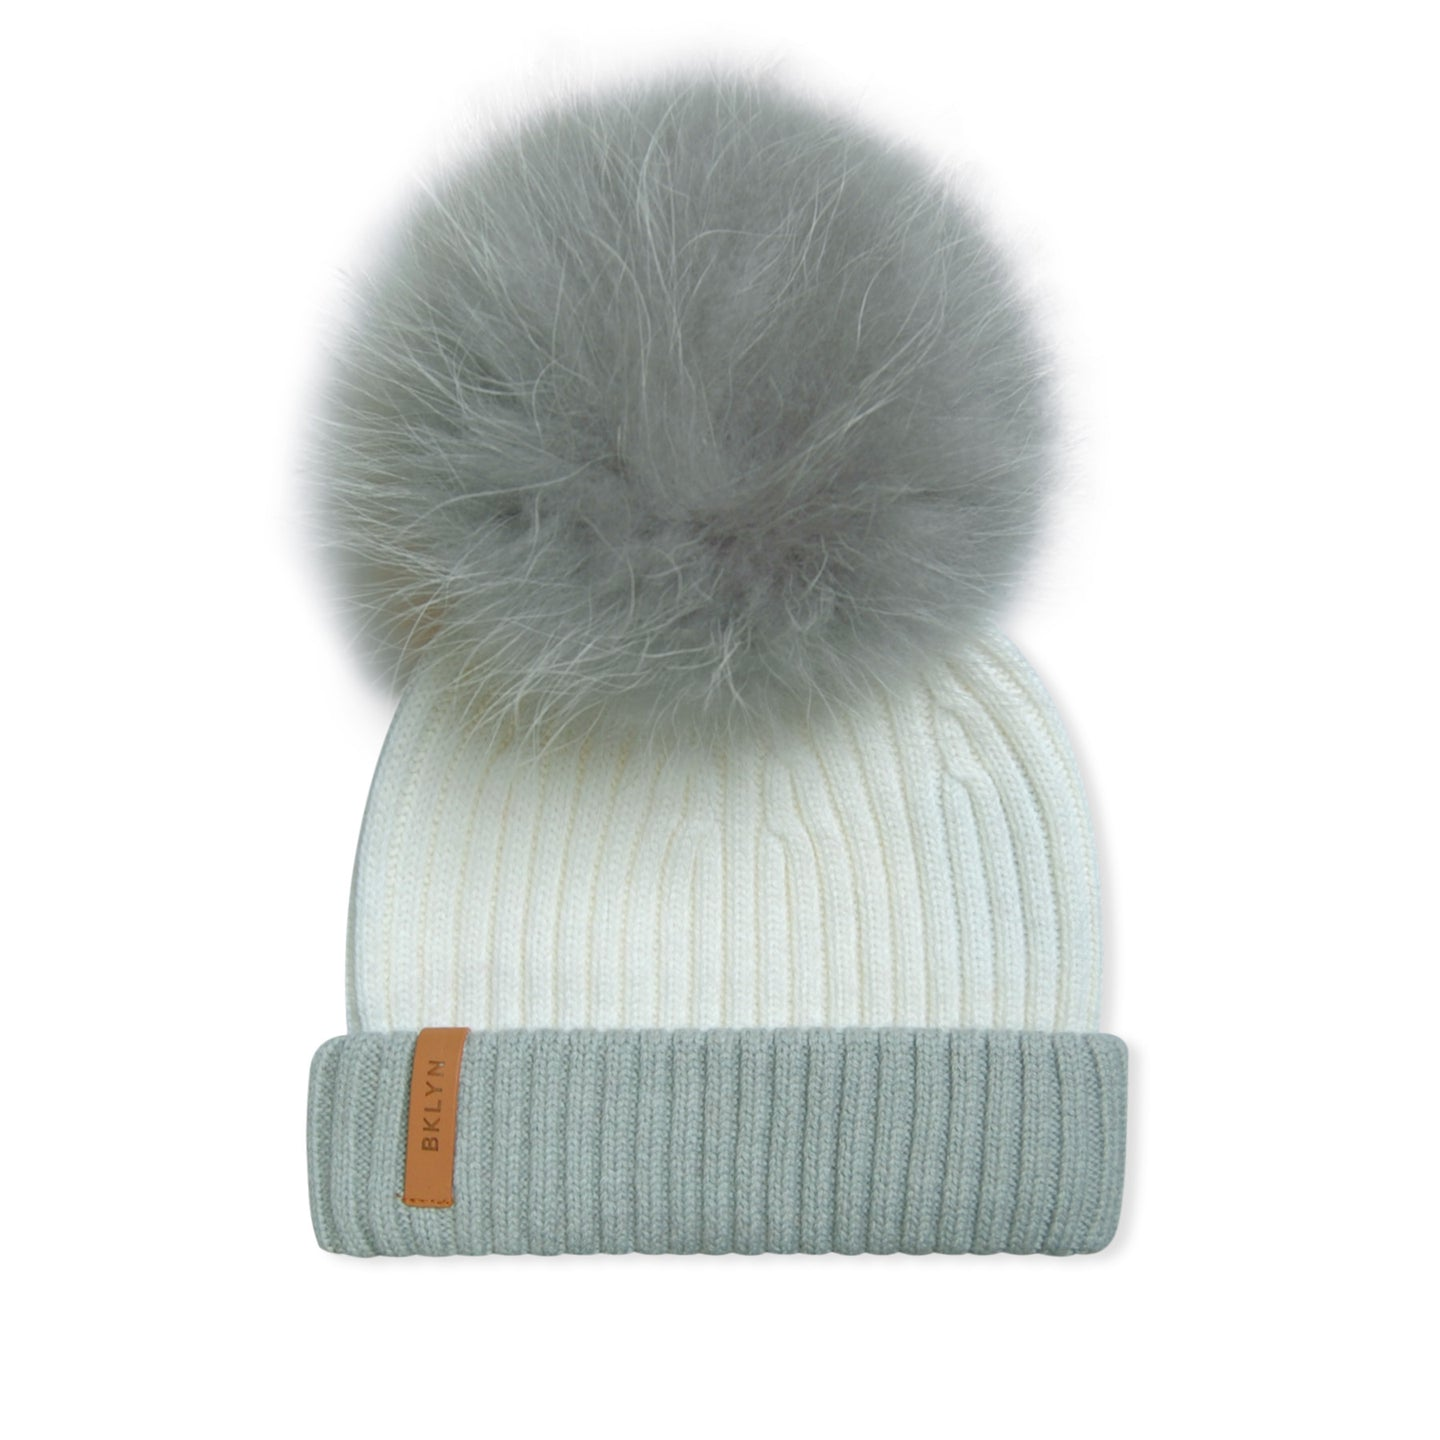 WMN White/Grey BKLYN Fur Knitted Bobble Hat